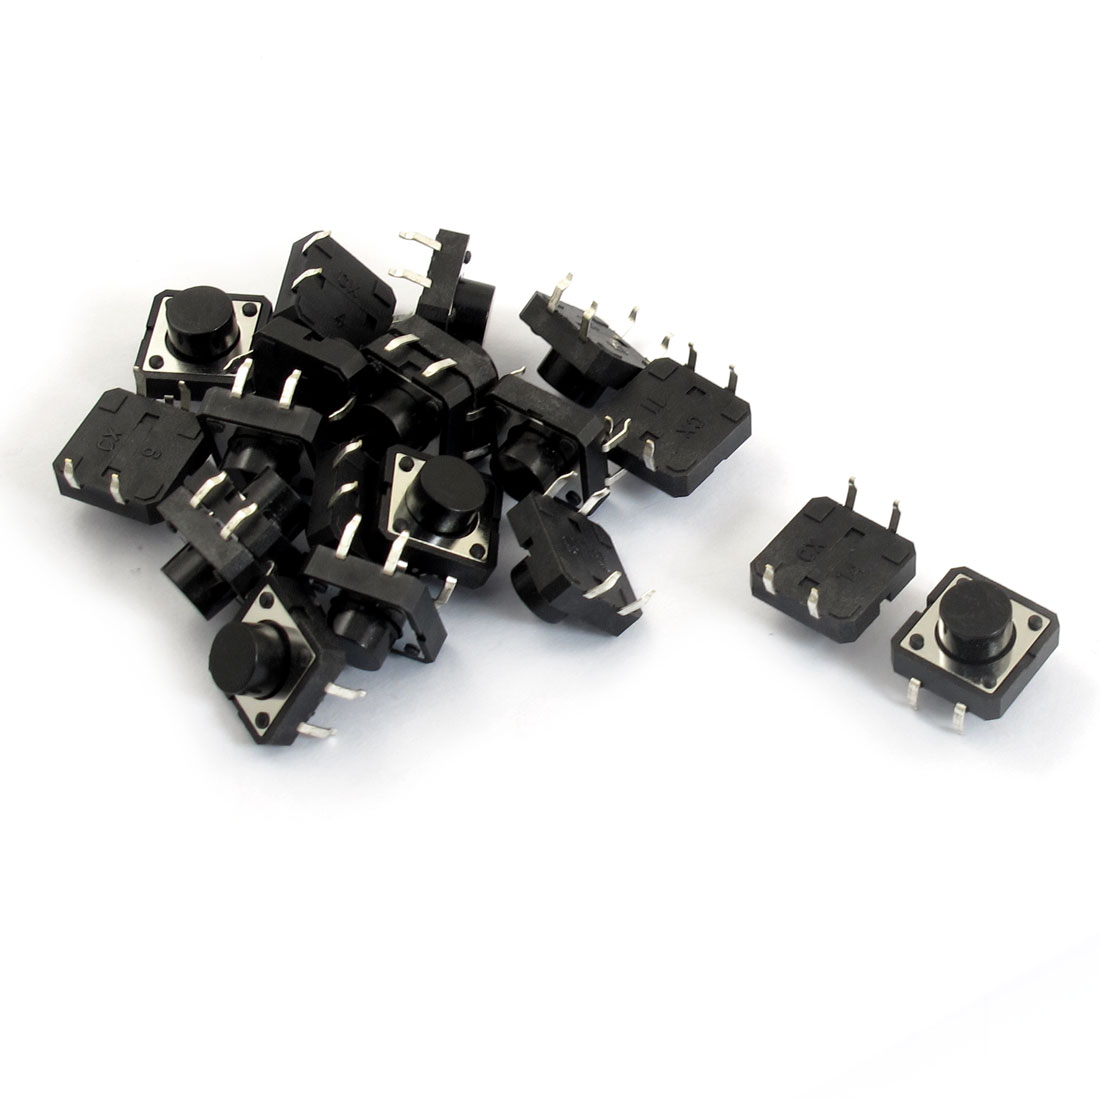 20 Pcs 12x12x7mm PCB Momentary Tact Push Button Switch 4 Pin DIP